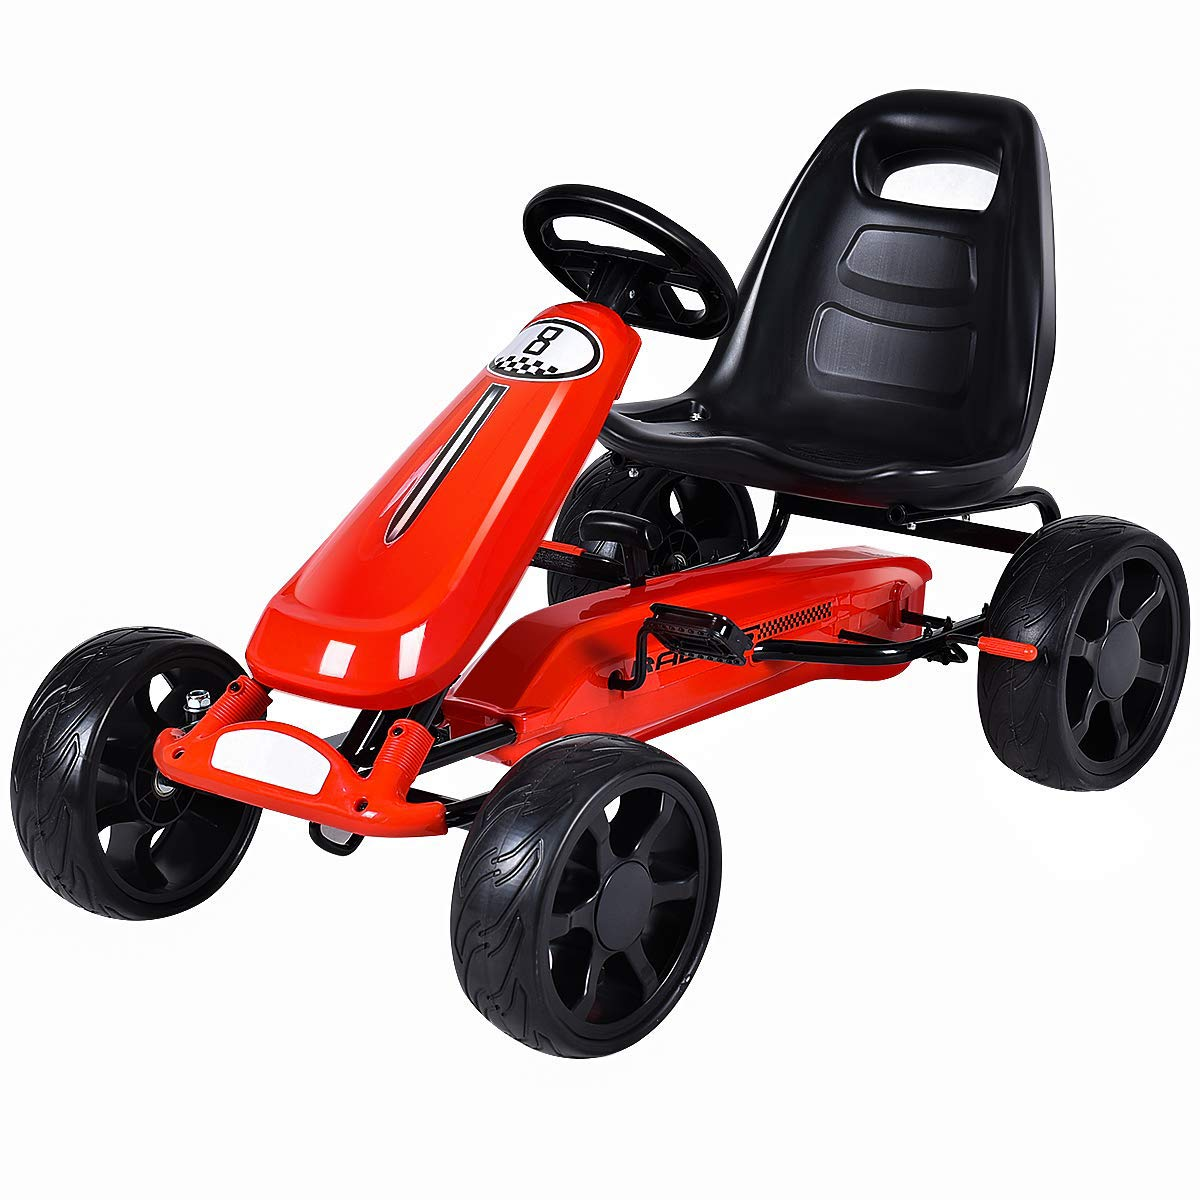 Costzon Go Kart, 4 Wheel Powered Ride On Toy, Outdoor Racer Pedal Car with Clutch, Brake, EVA Rubber Tires, Adjustable Seat, Red